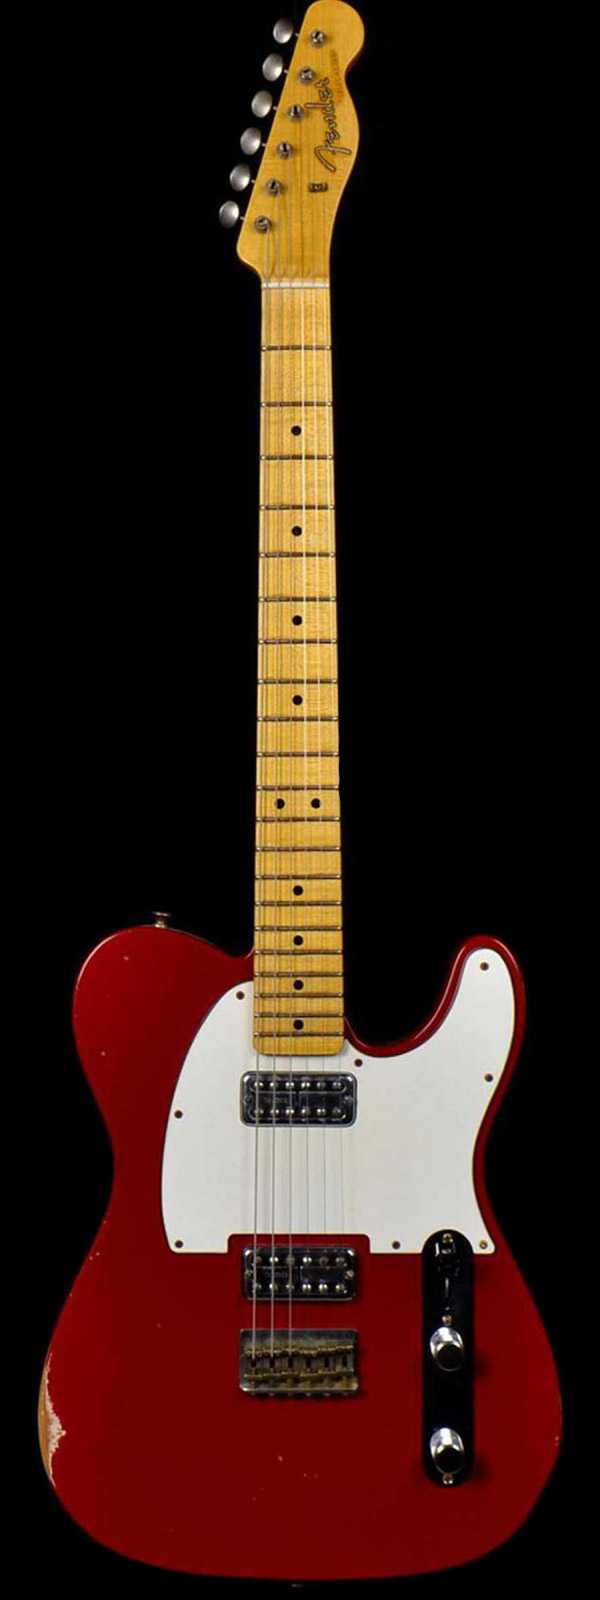 Fender 1963 Custom Relic Telecaster TV Jones Classic Pickups Torino Red Preowned